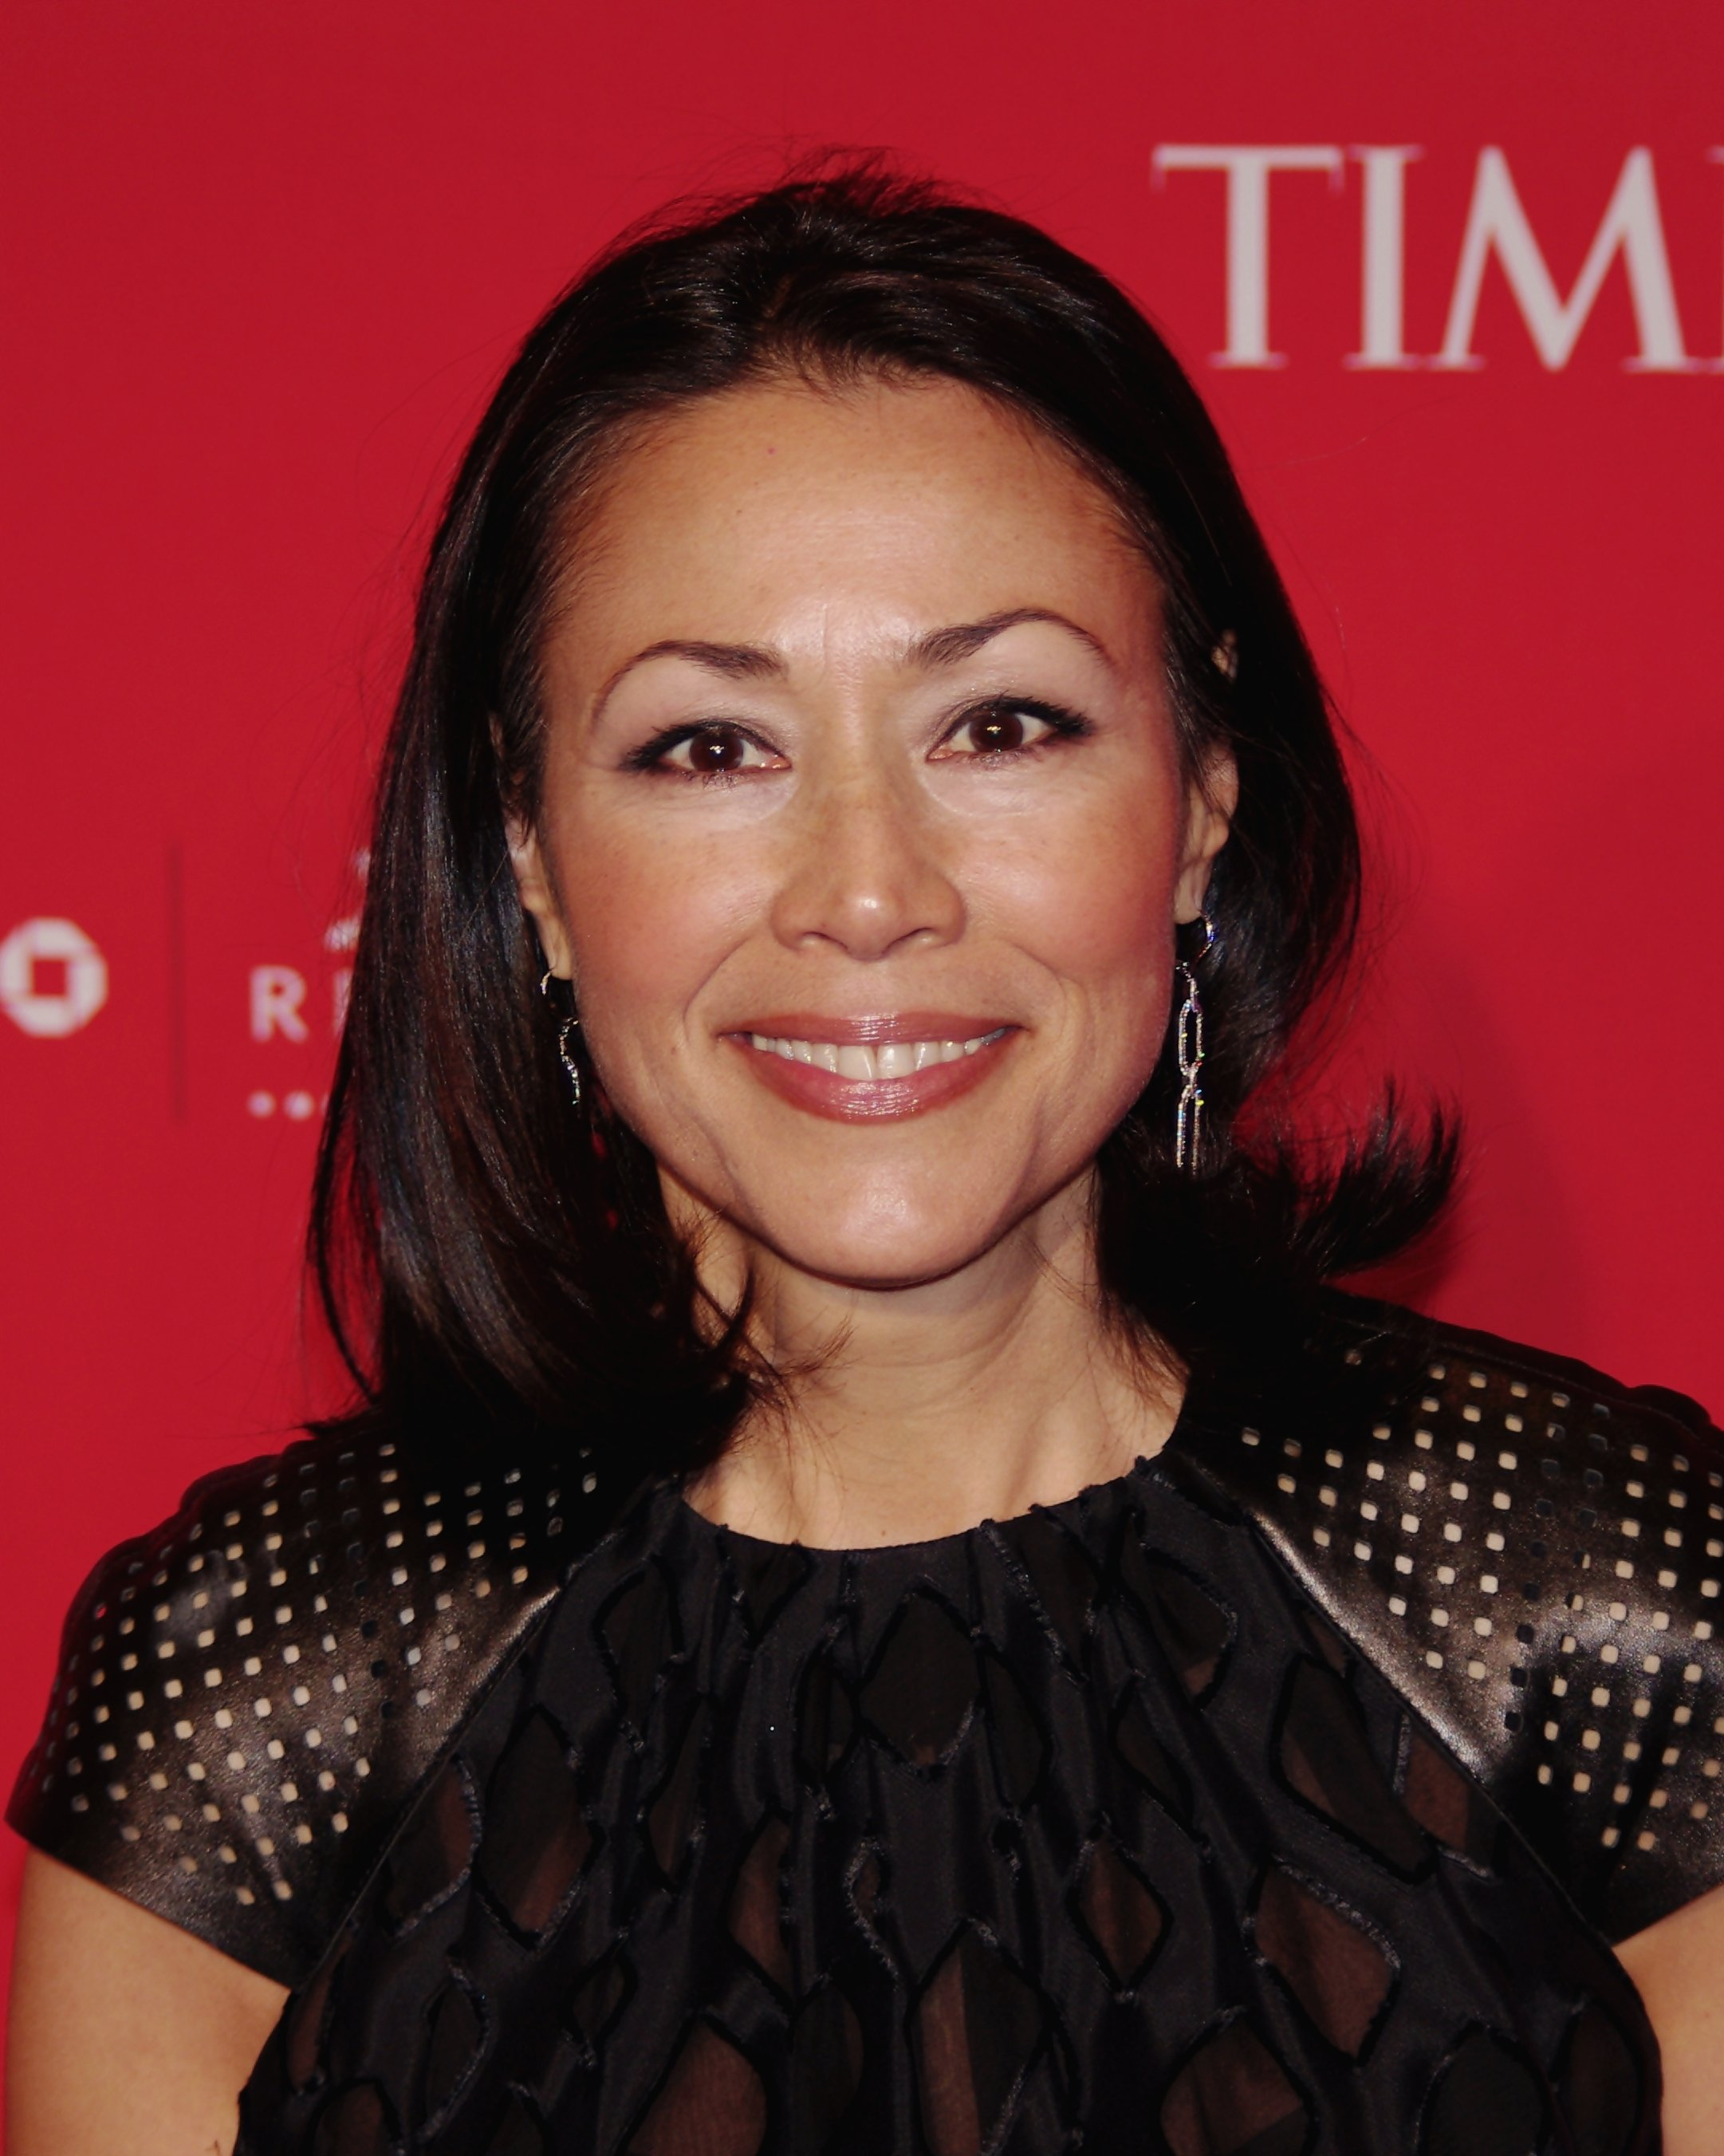 Ann Curry Image Source: Wikimedia Commons